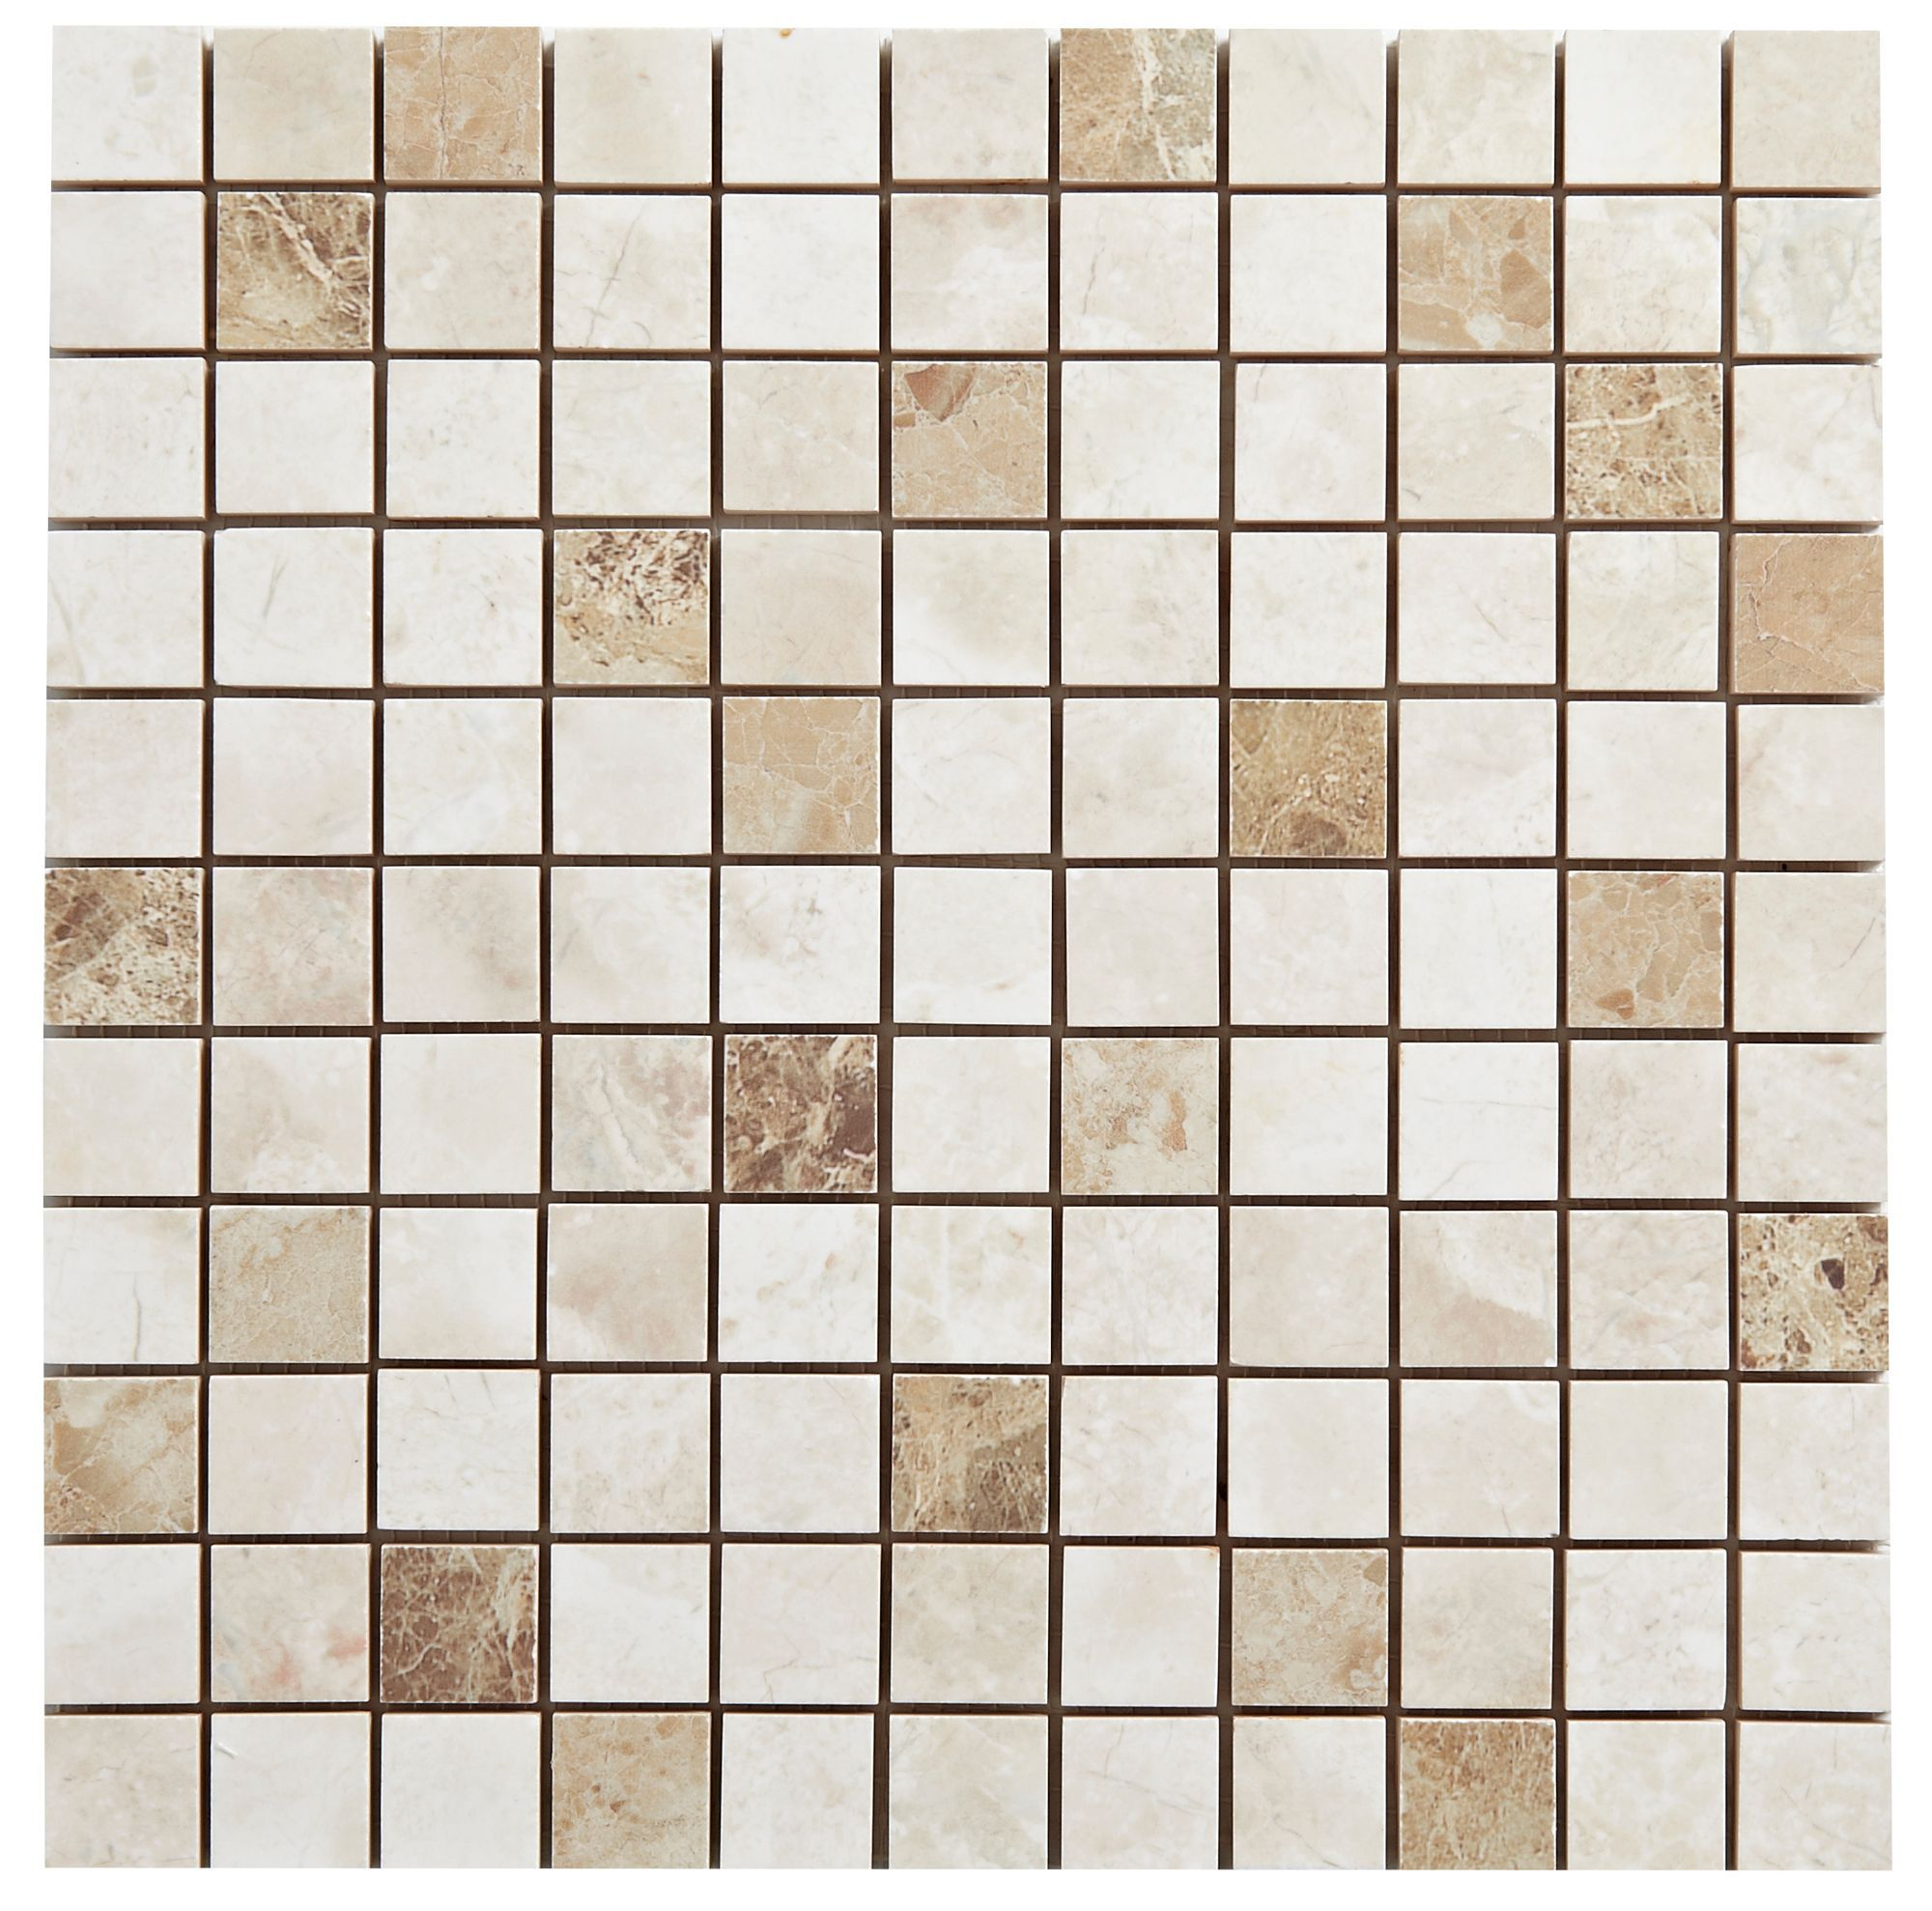 Illusion light stone effect ceramic mosaic tile l 300mm w 300mm departments diy at b q Ceramic stone tile